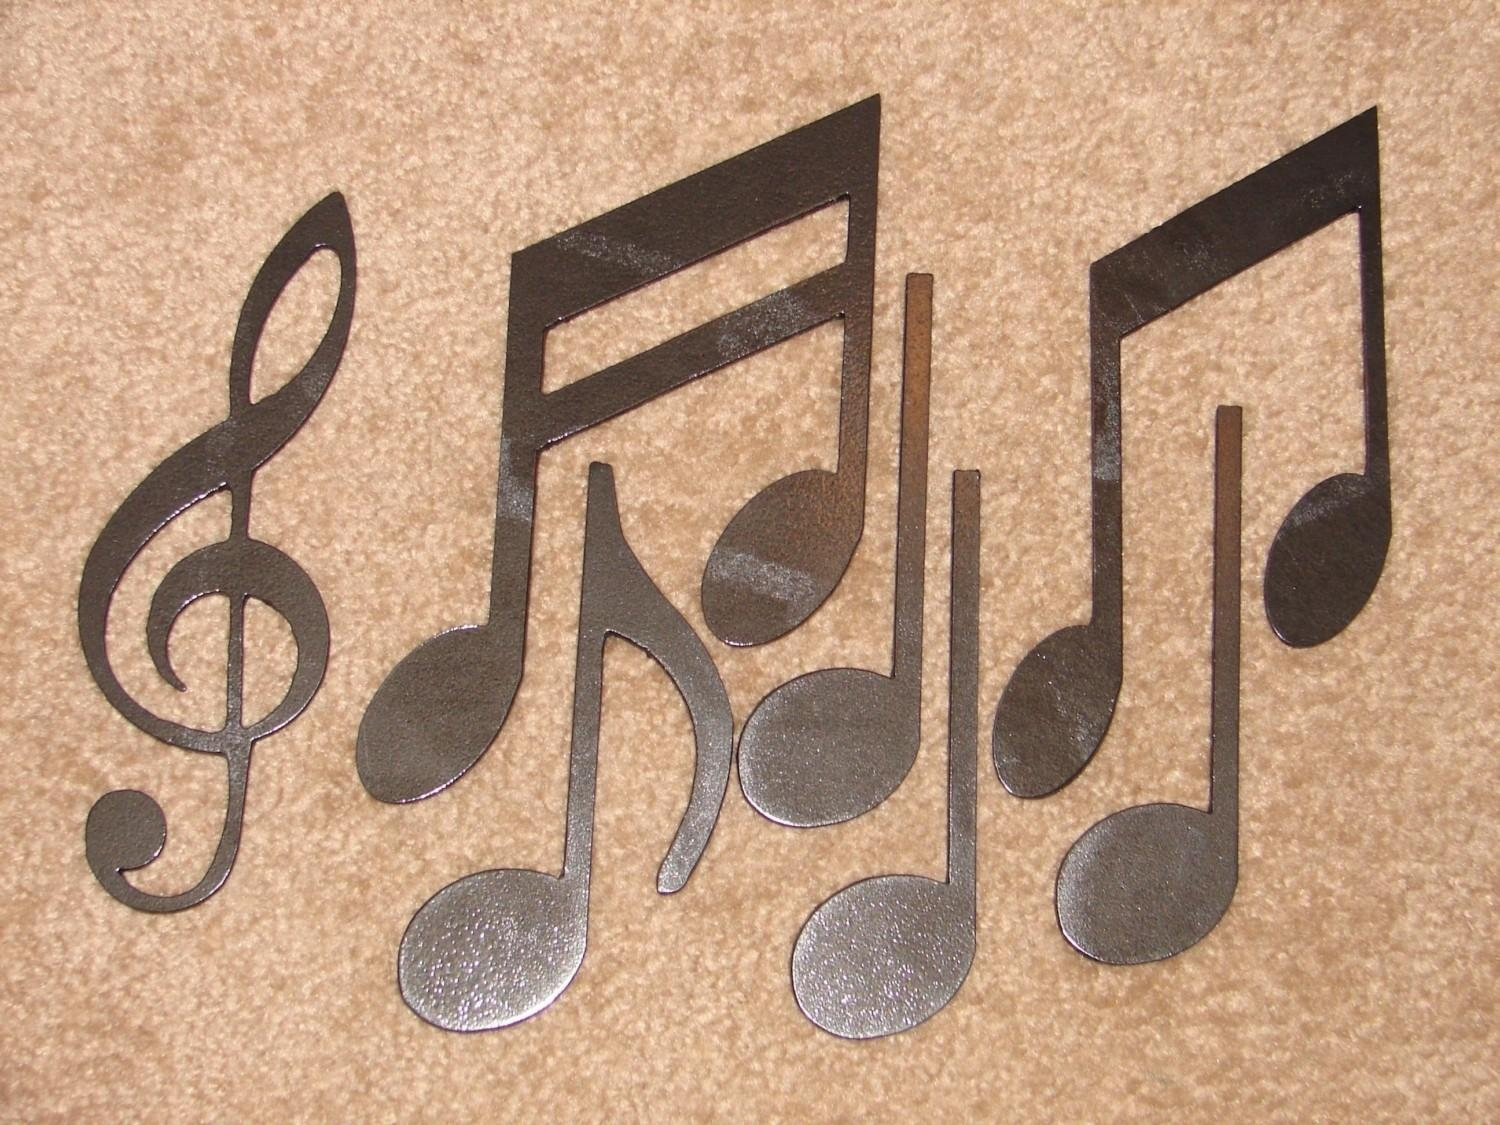 Metal Wall Art Decor Music Notes Musical Note Patio Intended For Music Note Wall Art (View 8 of 20)